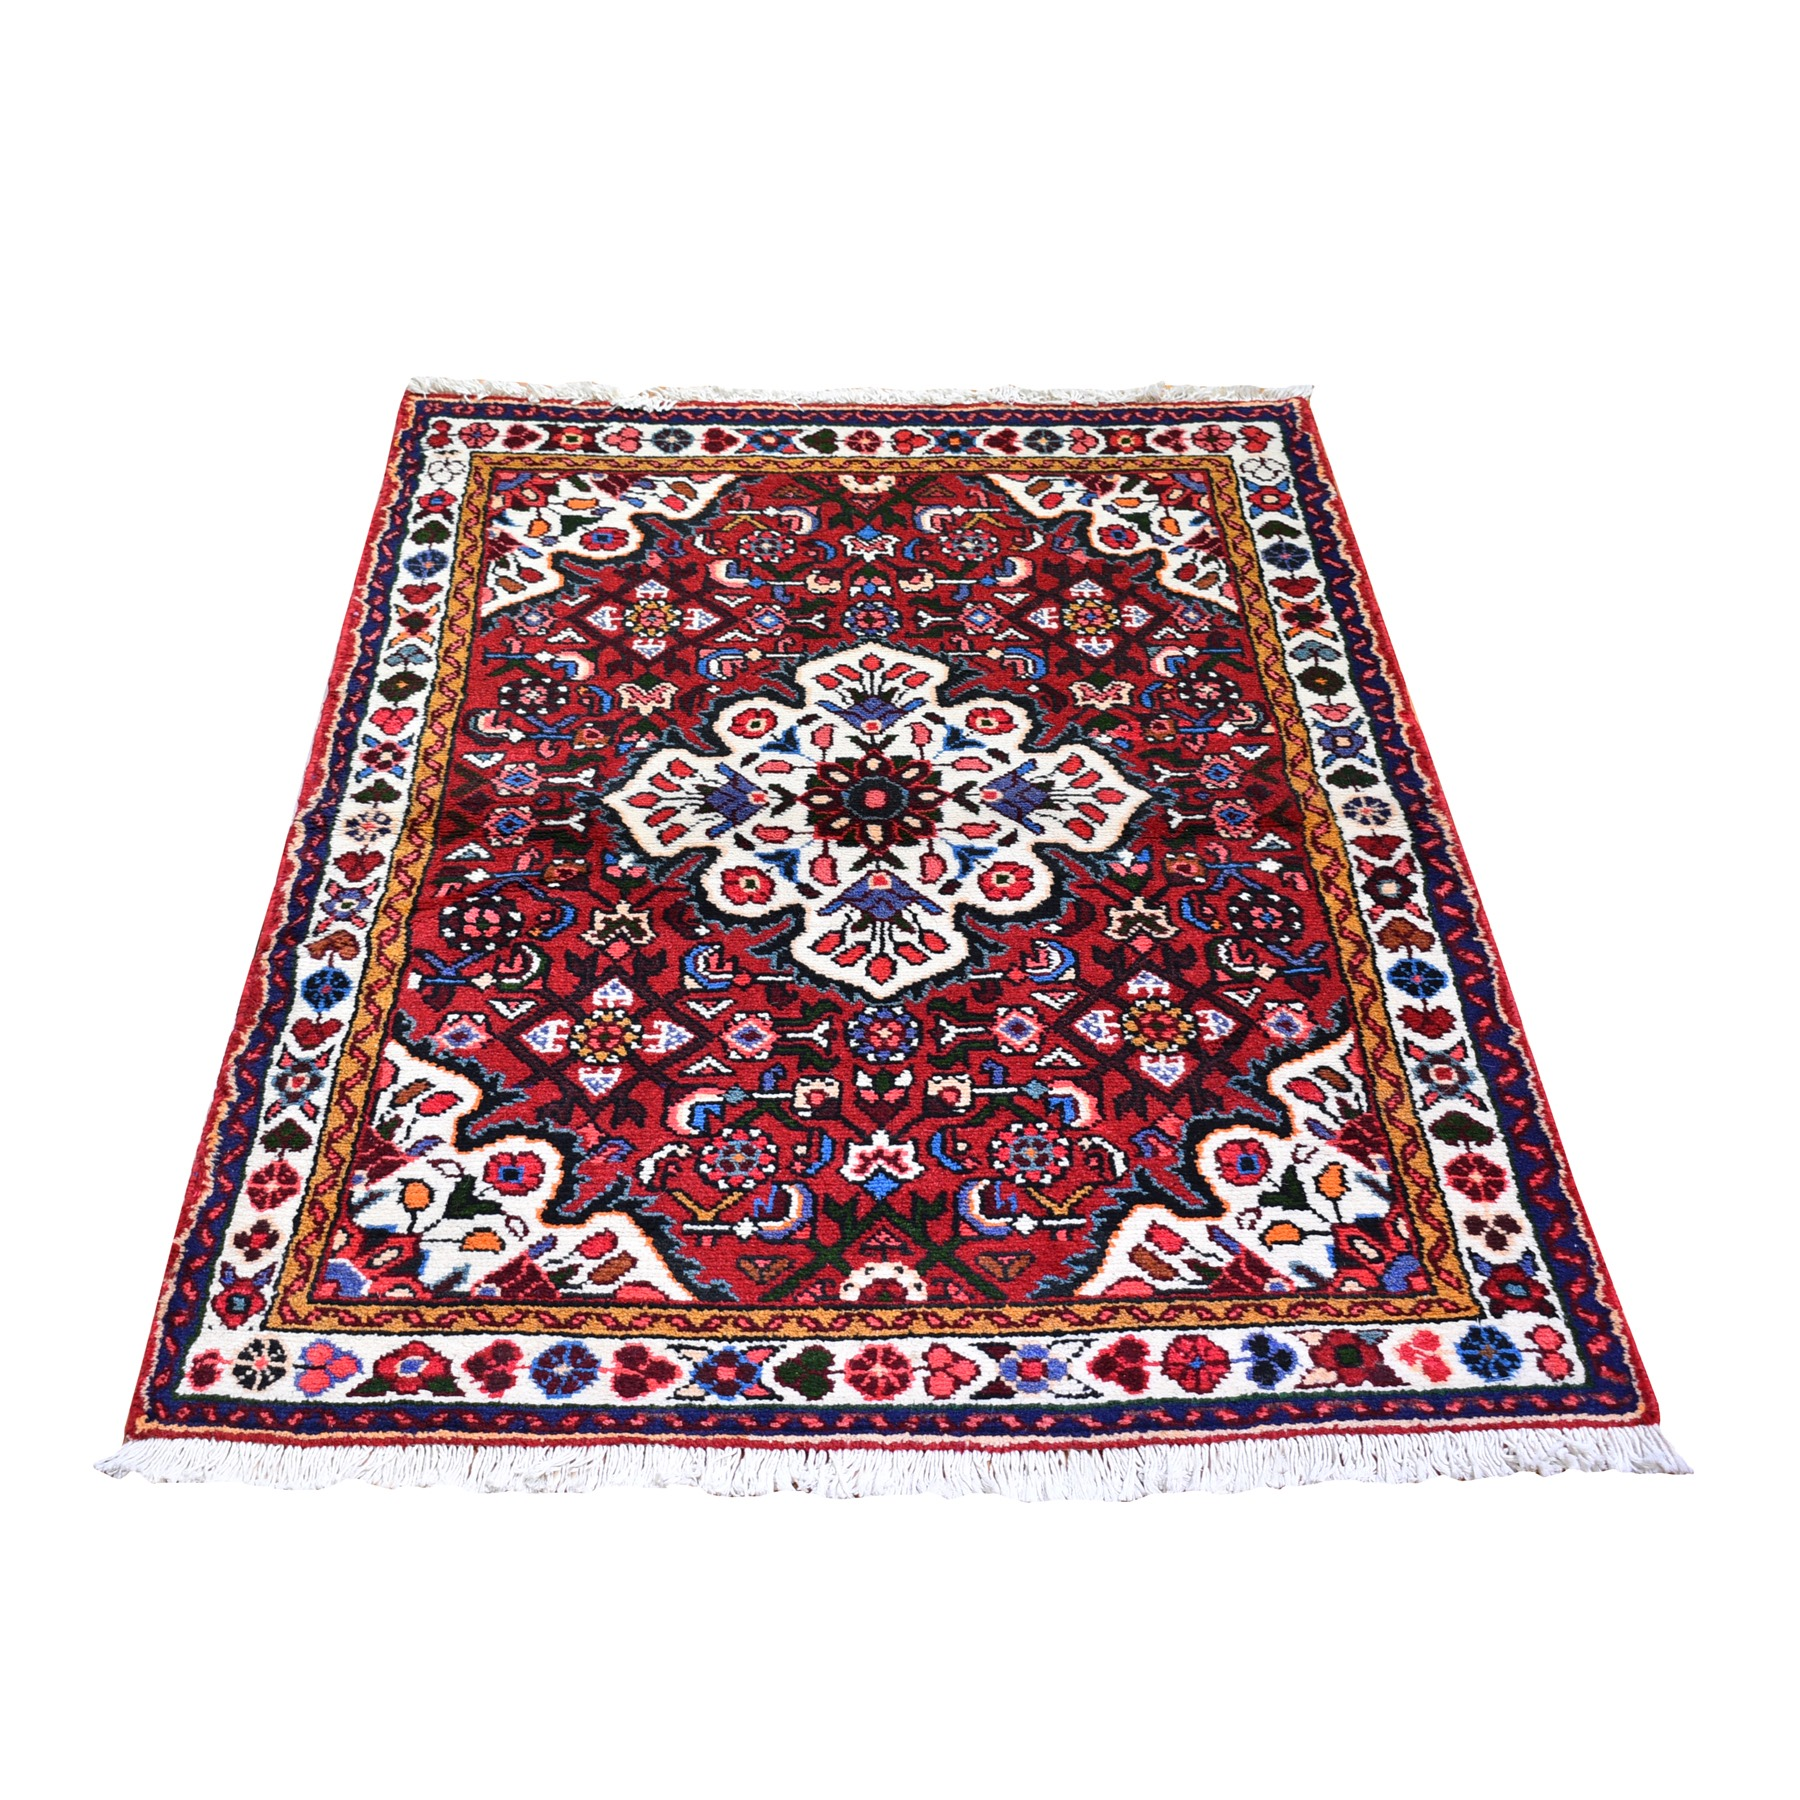 "3'3""x4'7"" Red New Persian Hamadan Flower Medallion Design Hand Knotted Oriental Rug"